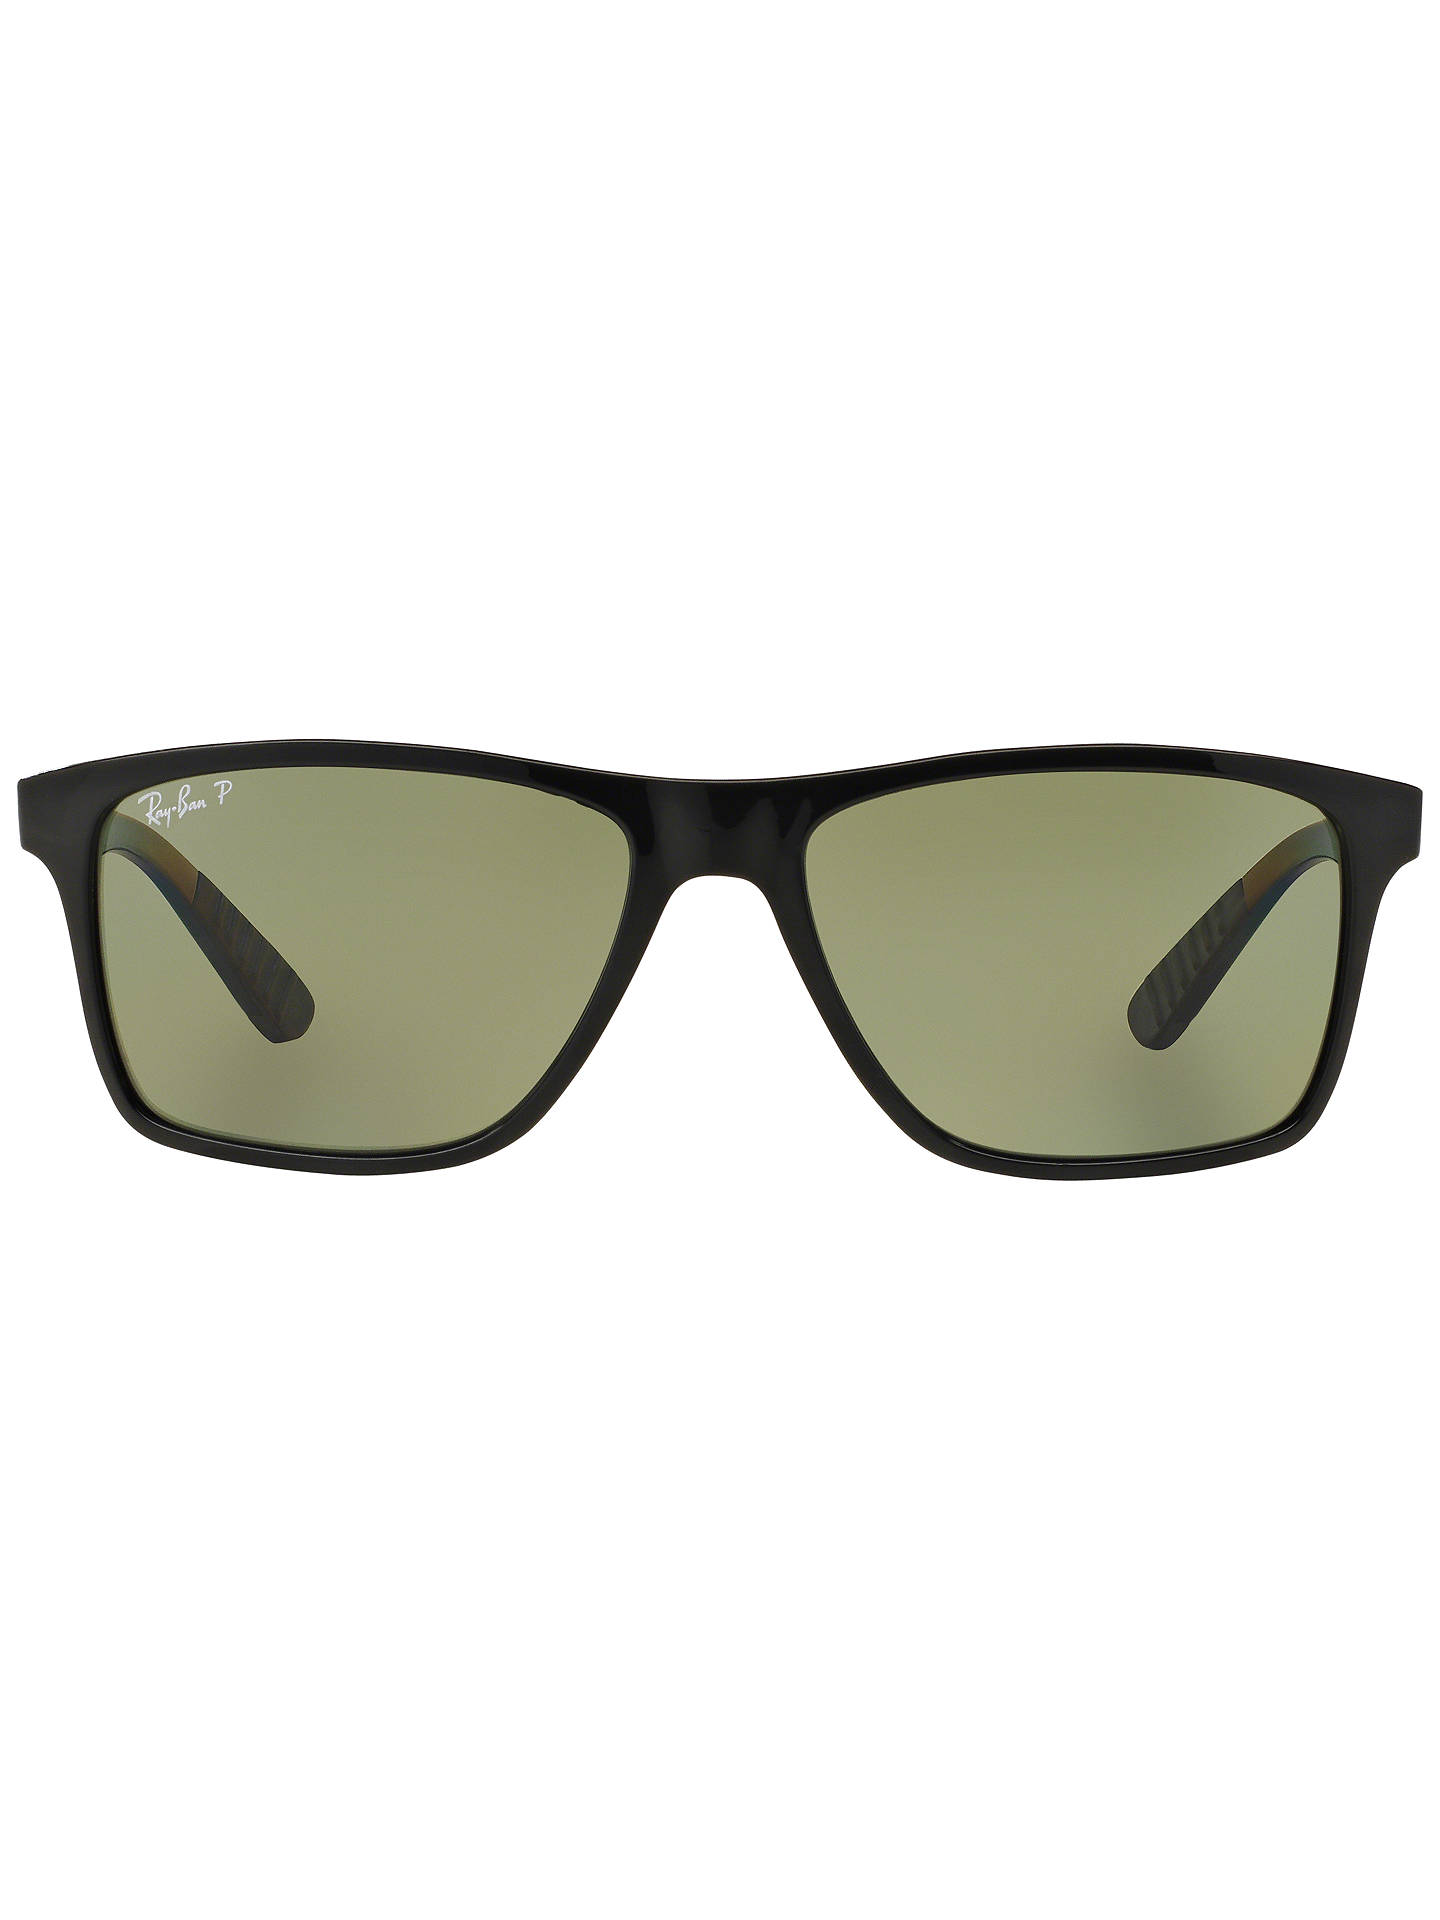 5210754a5f Buy Ray-Ban RB4234 Polarised Rectangular Sunglasses